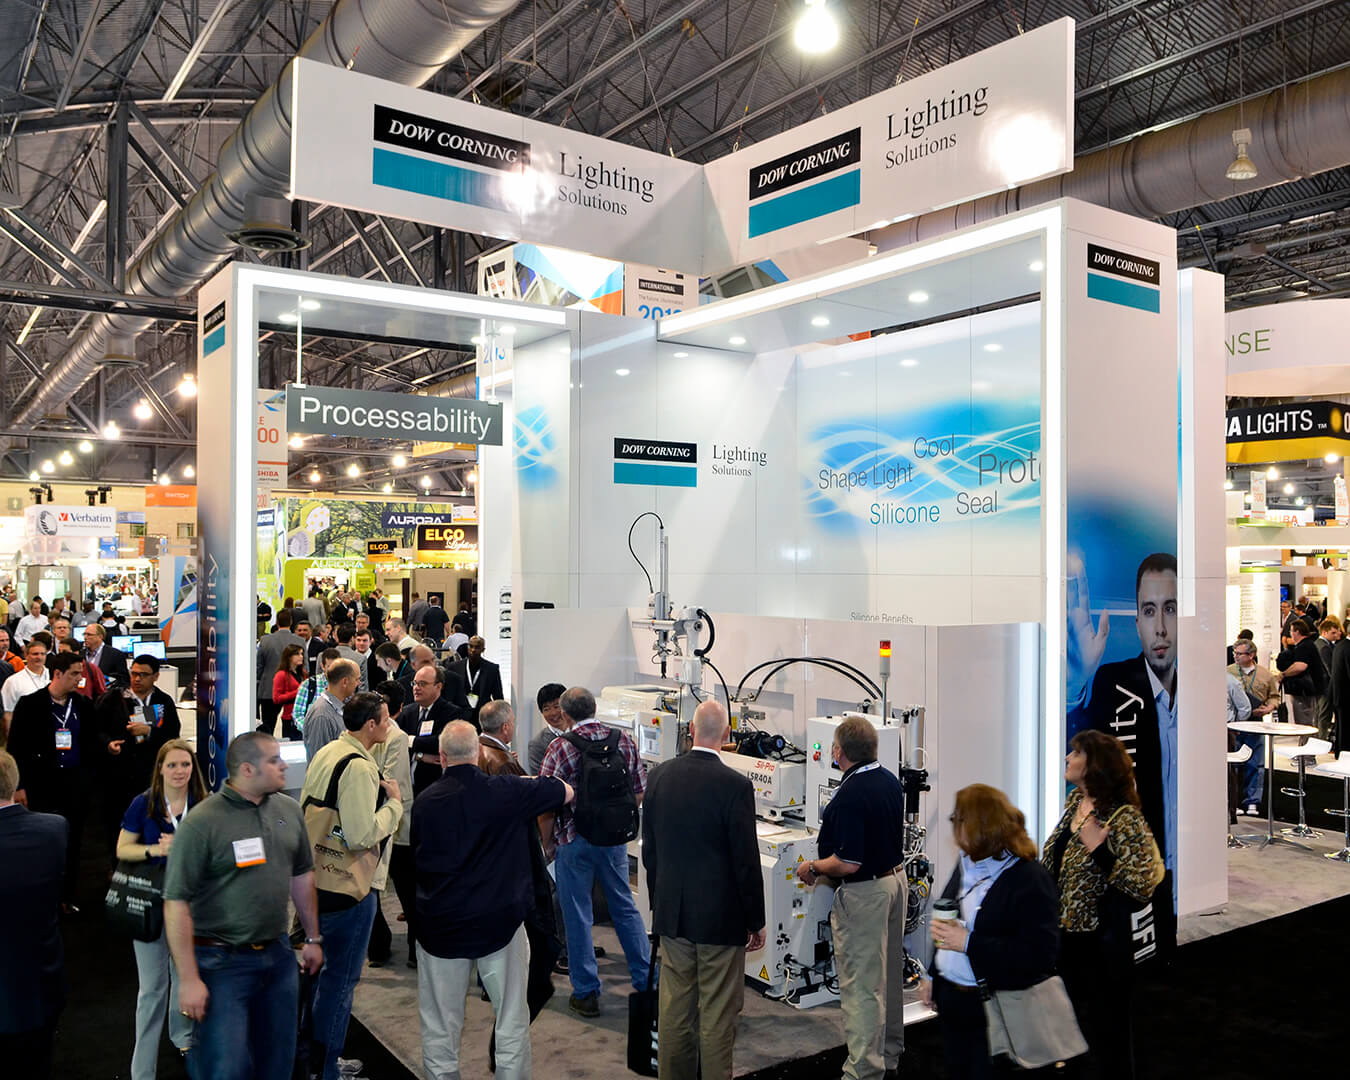 Dow Corning Lighting Booth